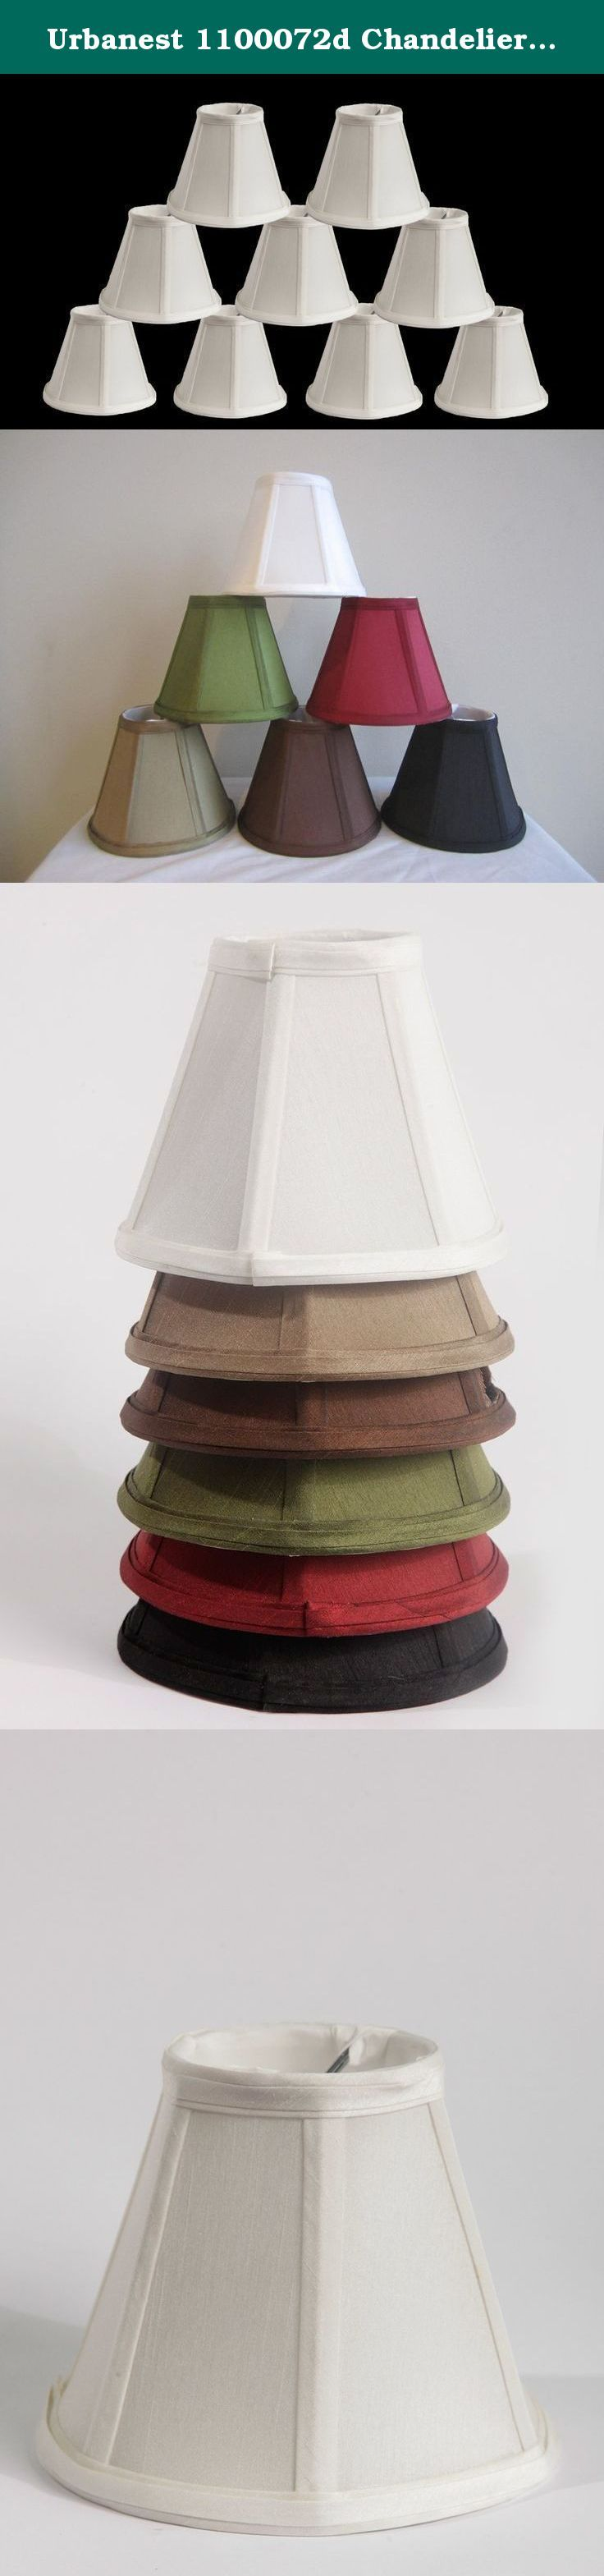 Urbanest 1100072d Chandelier Lamp Shade, 6-inch, Empire, Clip On, White (Set of 9). Urbanest handmade 6-Inch silk chandelier shades add soft glow to your home. You can use them for your chandeliers, wall sconces or small accent lamps. The transitional empire shades bring calm to any classic and modern room setting.